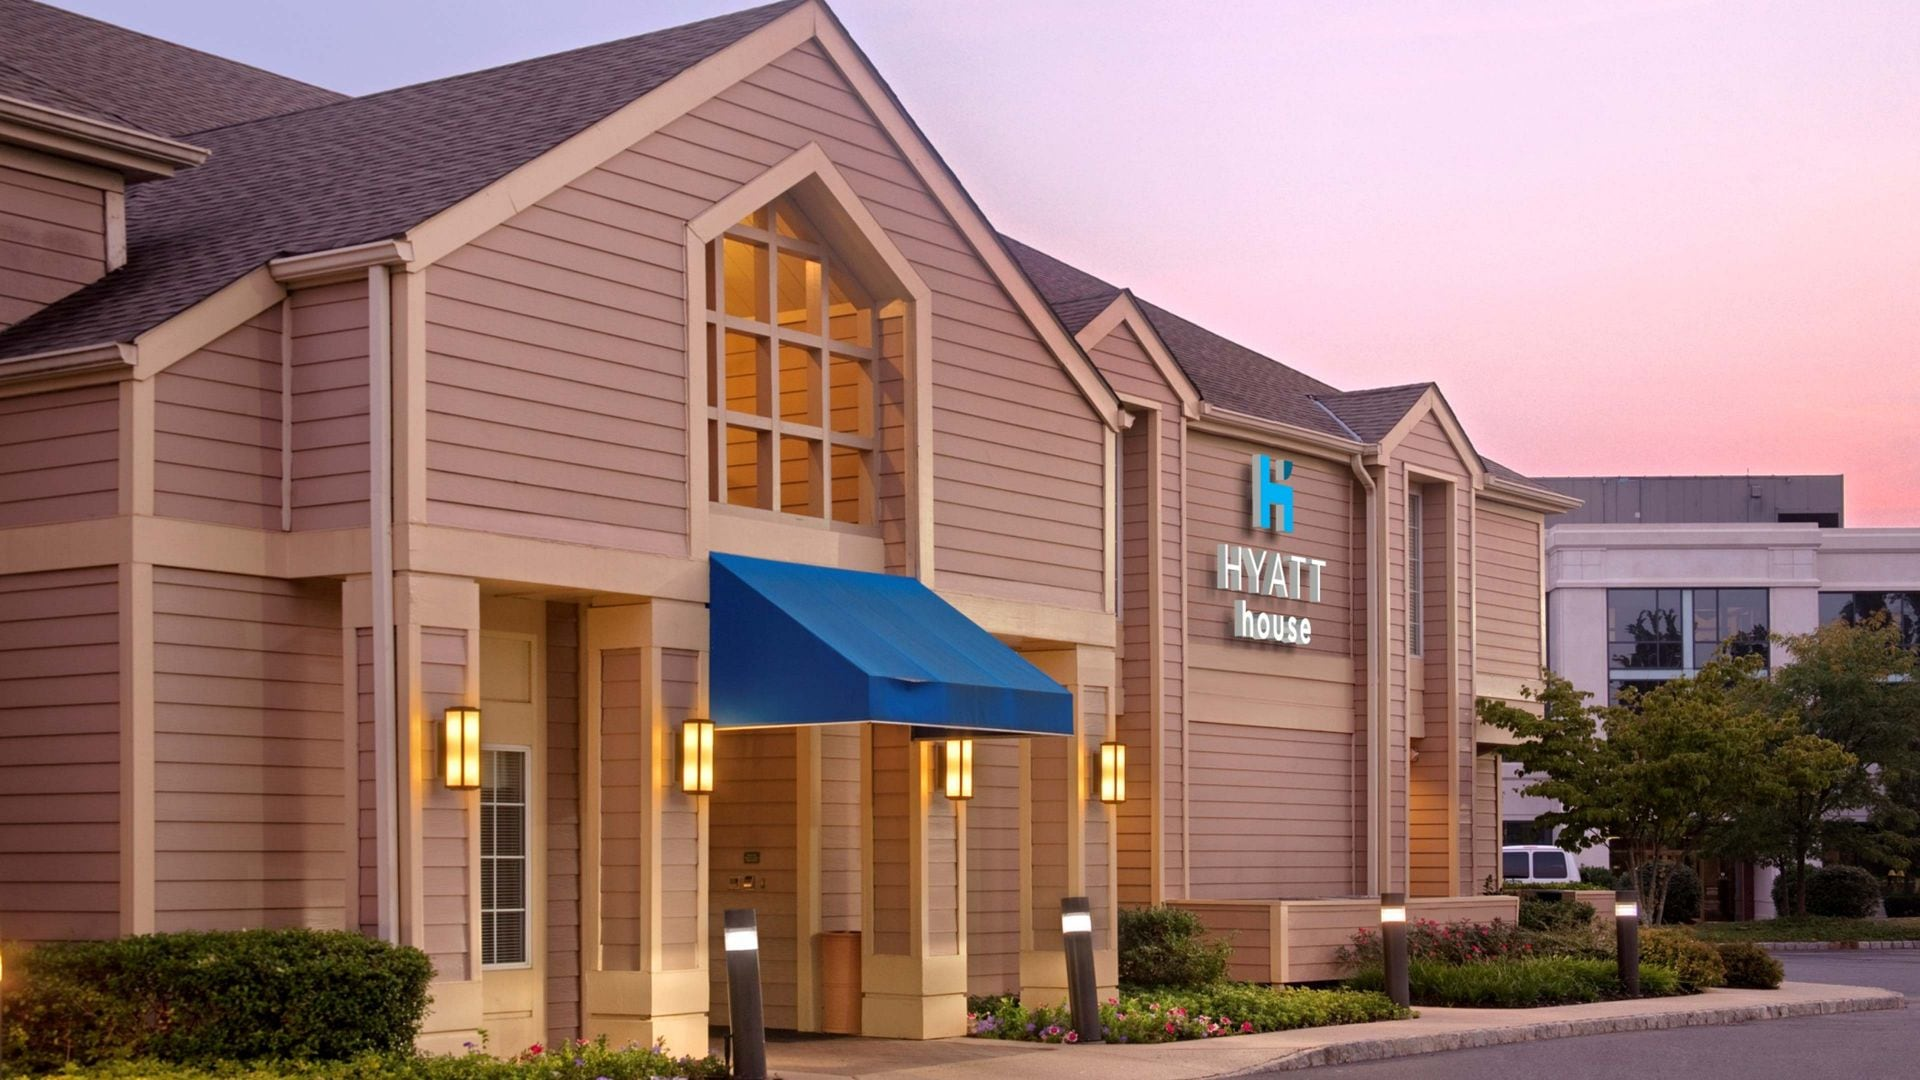 Bridgewater Hotels Hotel In Bridgewater Nj